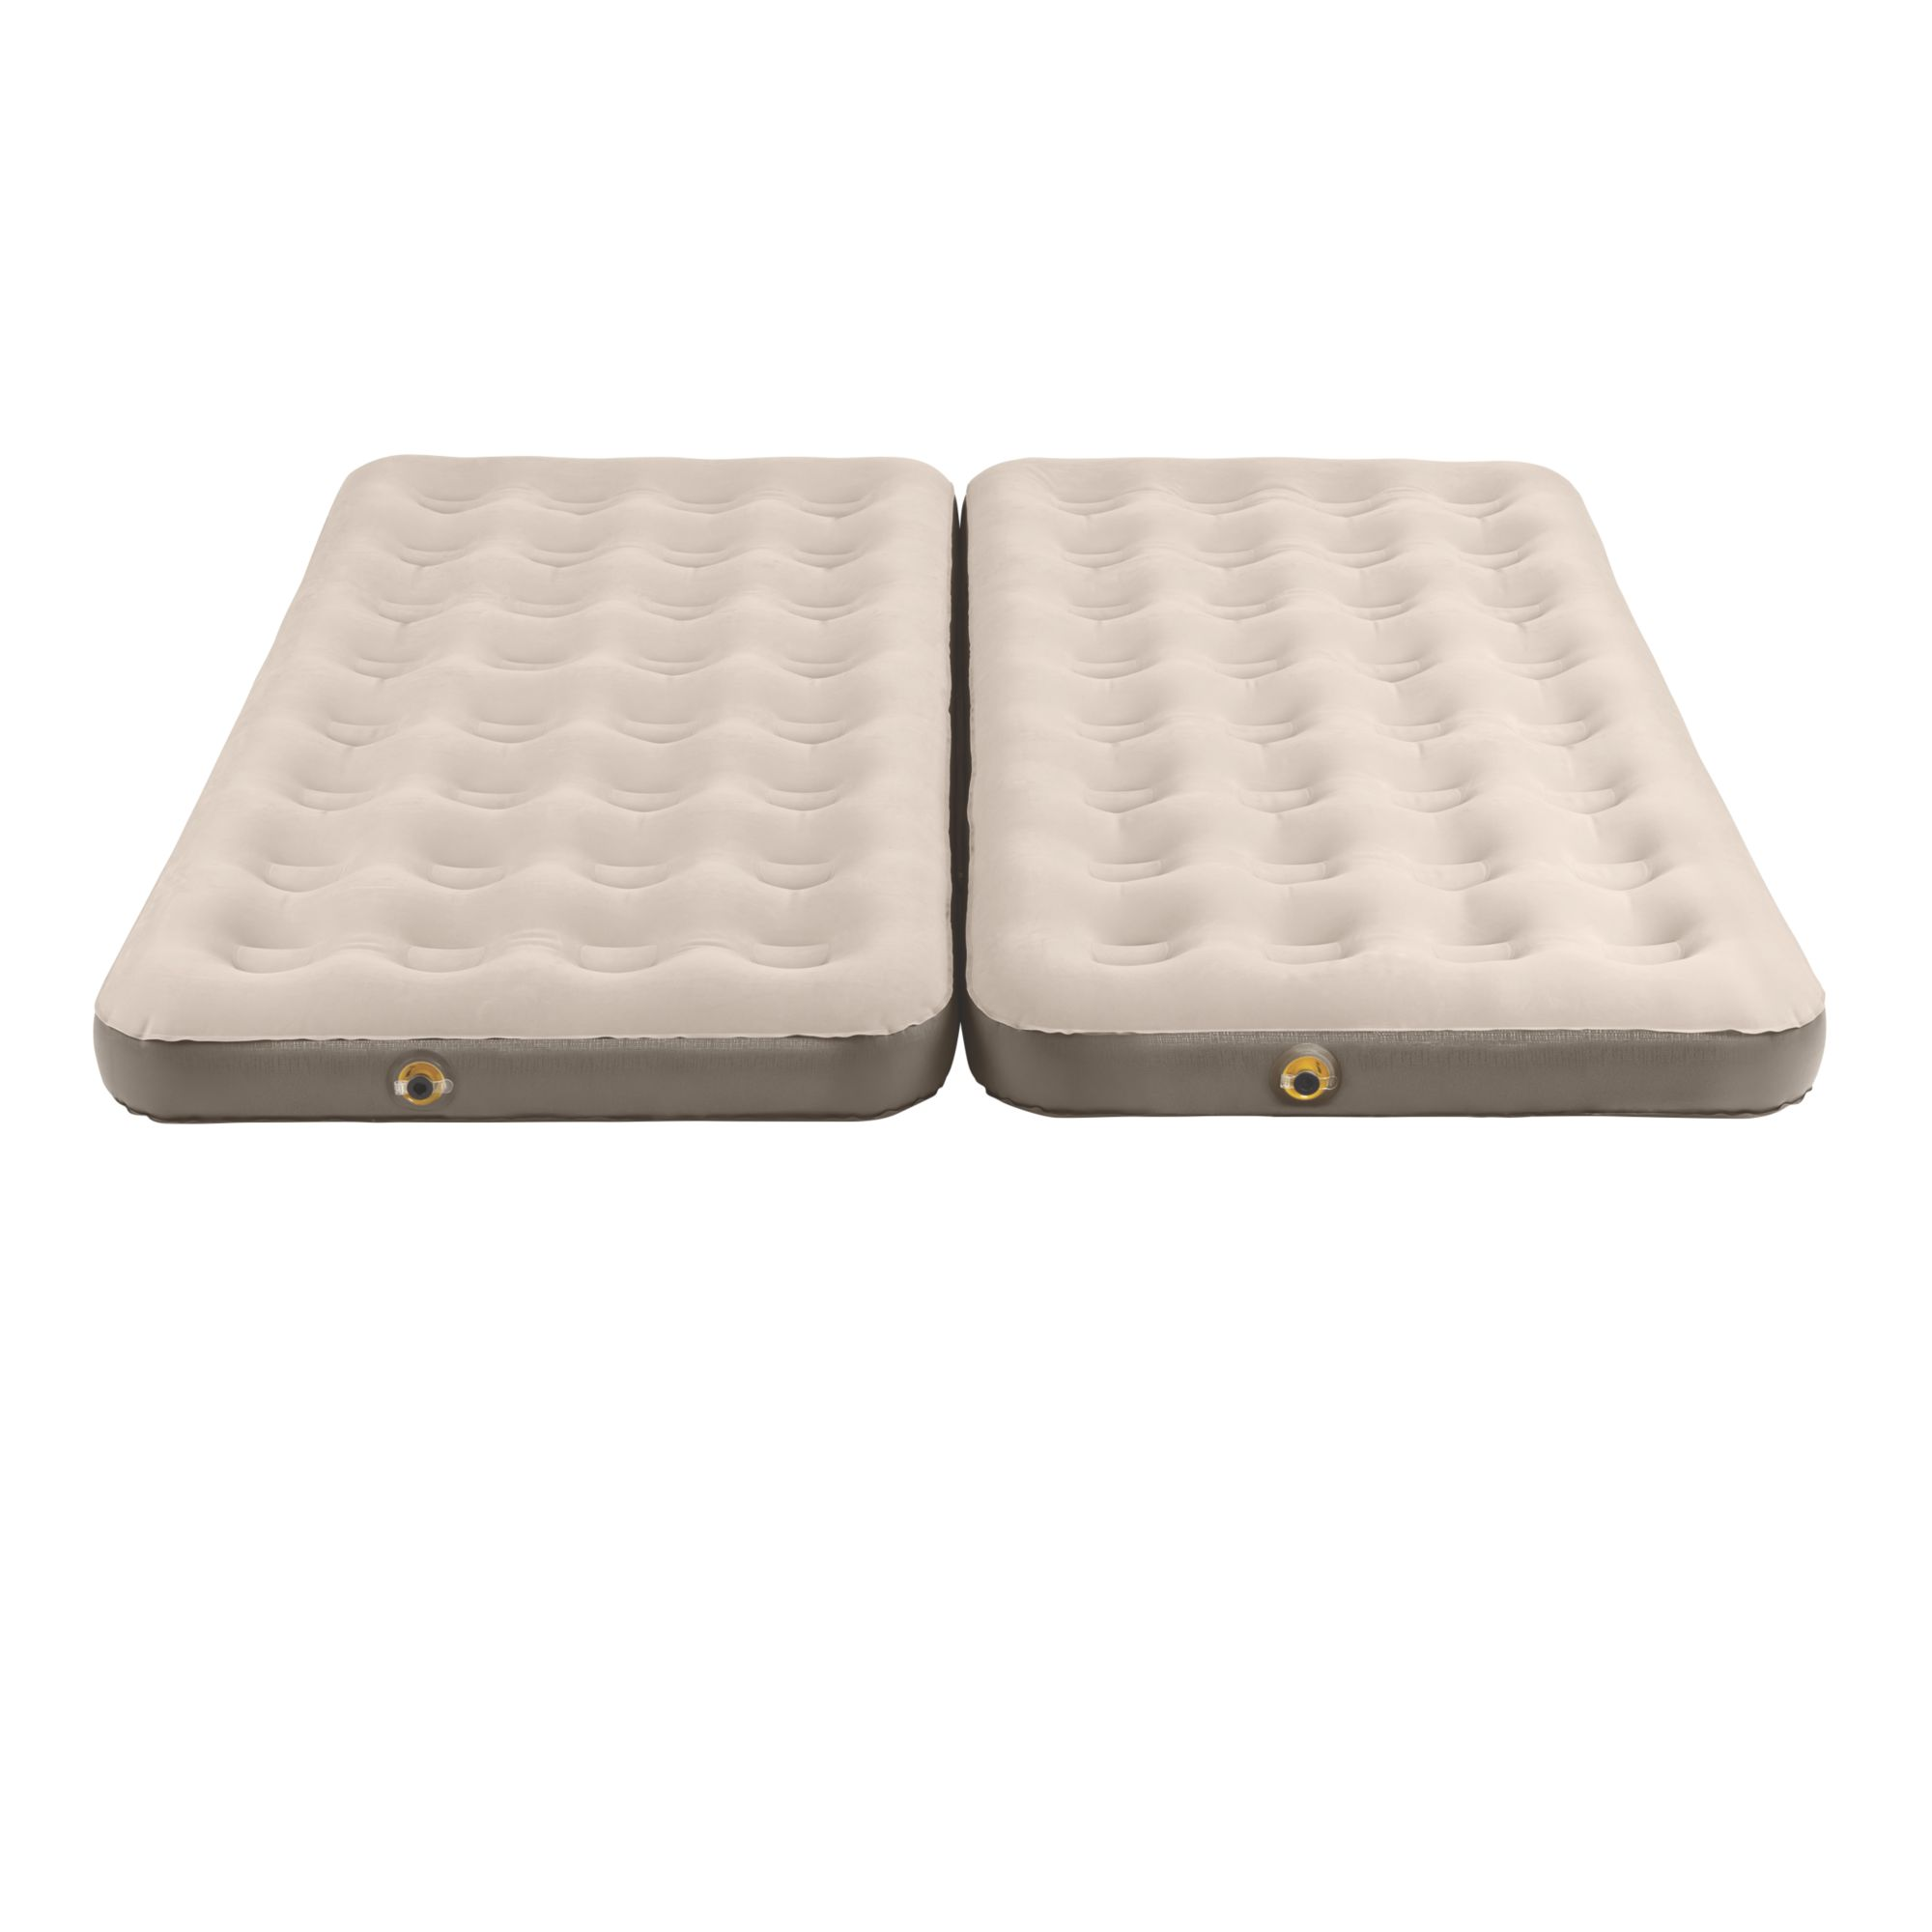 comfort innerspring have sleep instant great of advantages van beds over for or lifetime air foam today bed one try a mattresses